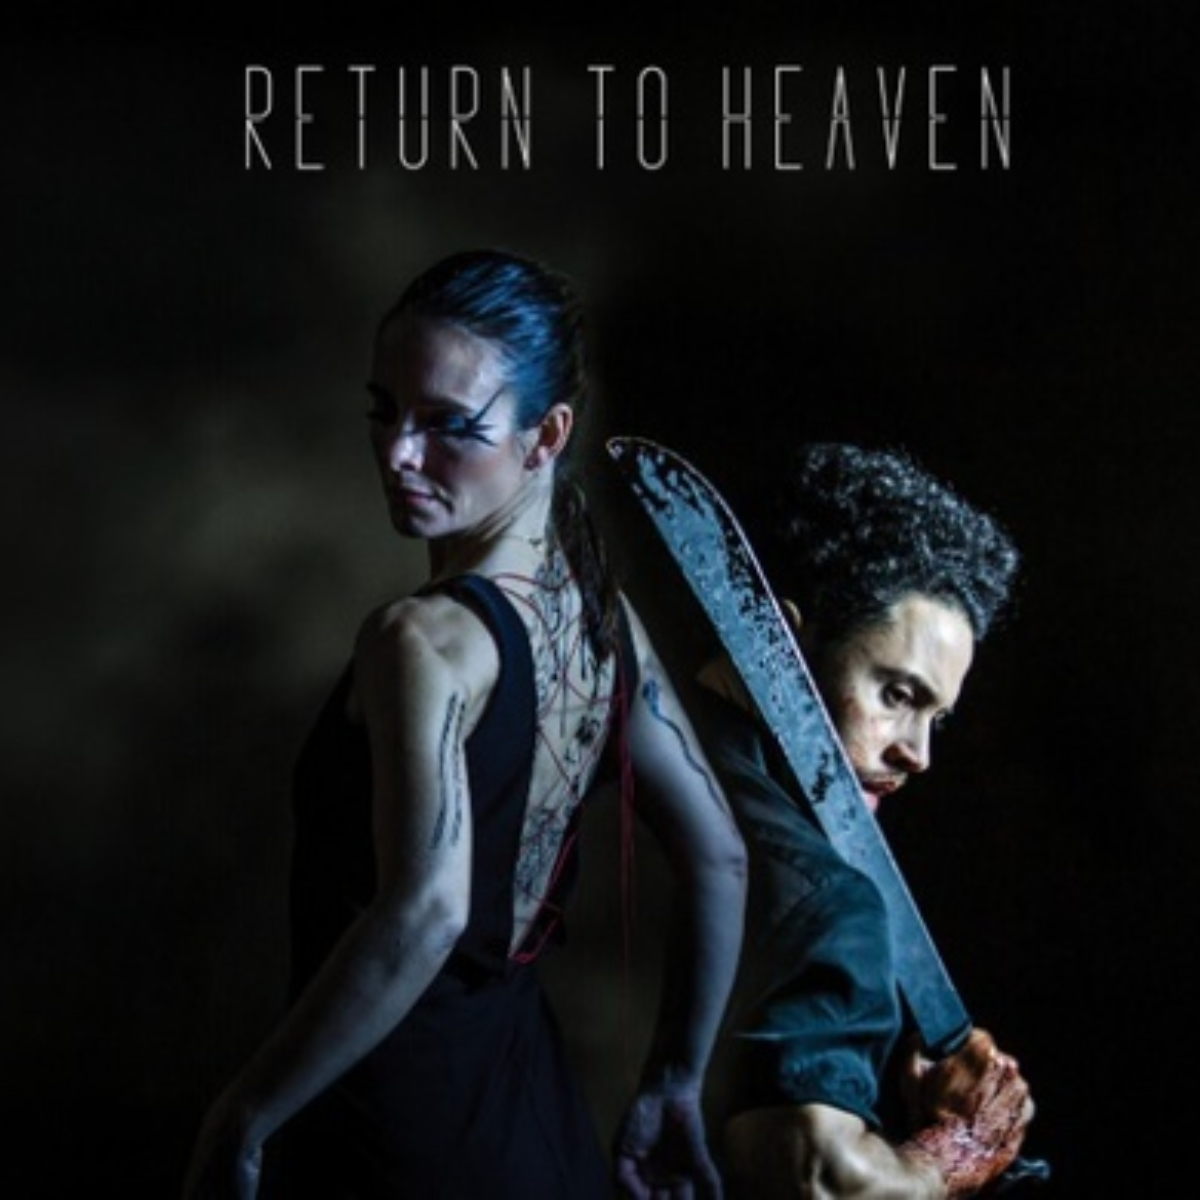 Return to Heaven Images